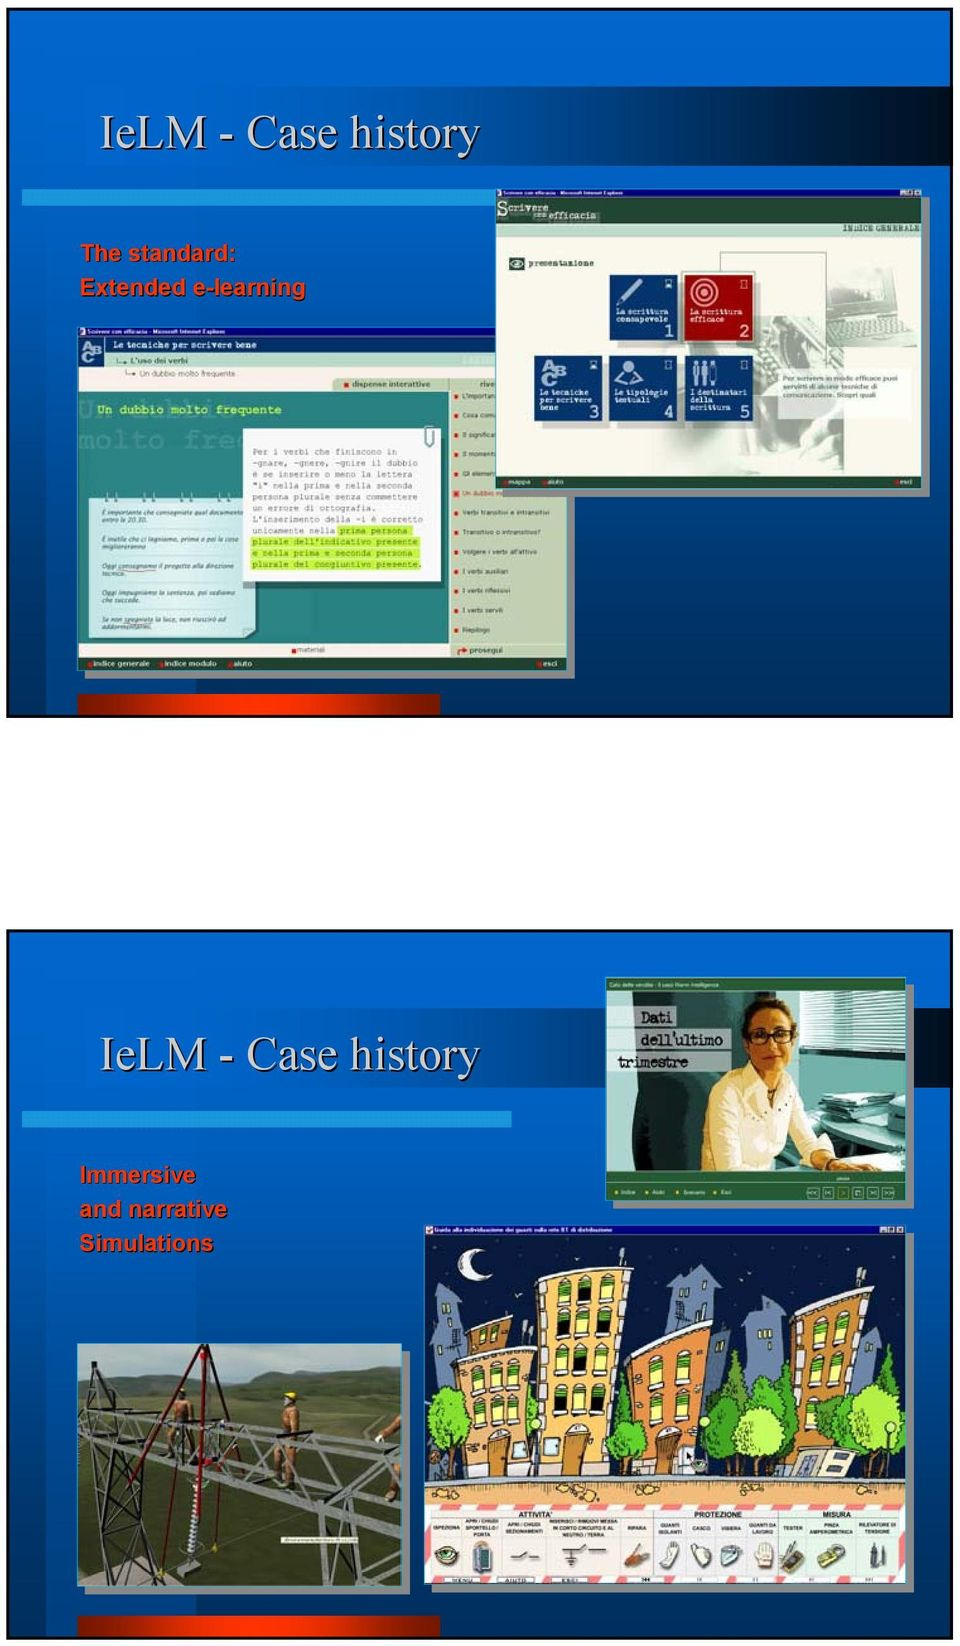 e-learning IeLM - Case